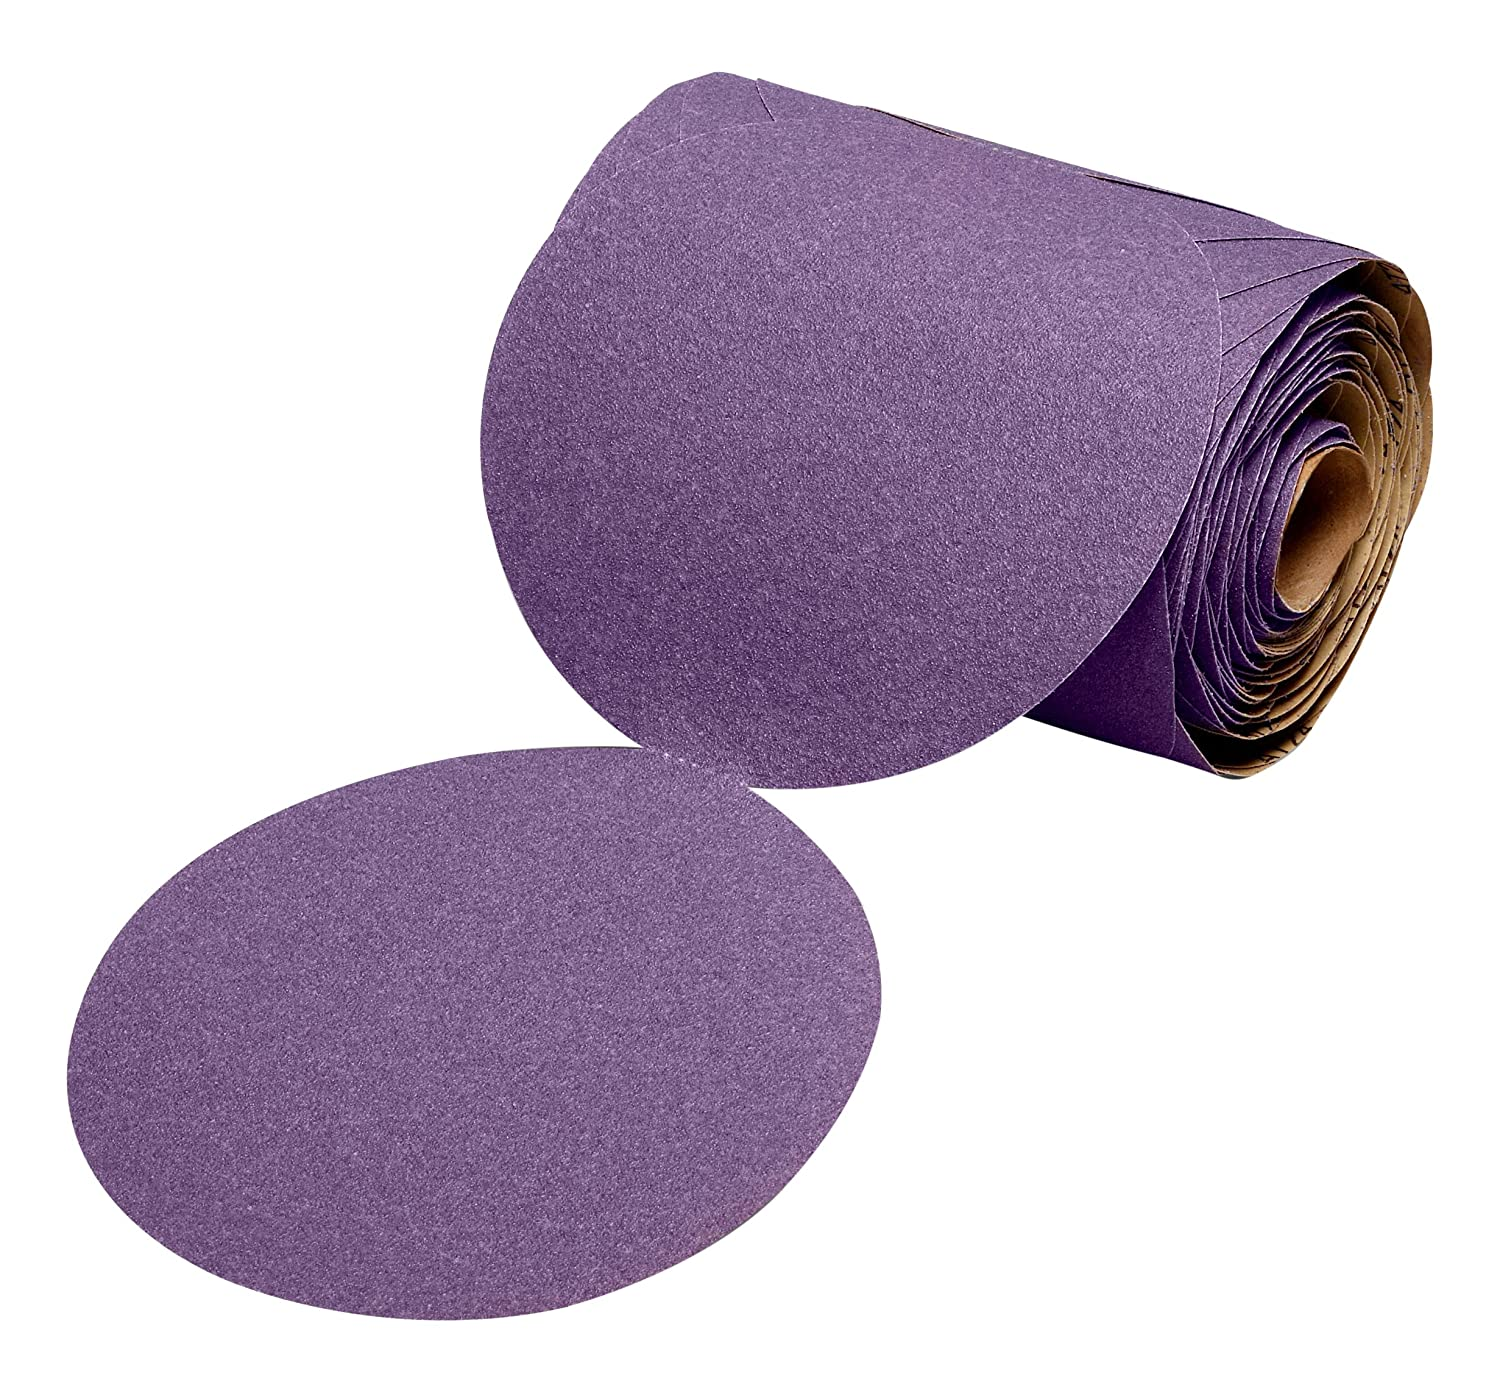 "Cubitron II 64280 3M Stikit Film Disc Roll 775L, 5 in x NH 180+ Film 3 MIL, 100 Discs per roll, Film, Backing, Precision Shaped Ceramic Grain, 5"", Purple 9162gTyb4cL._SL1500_"